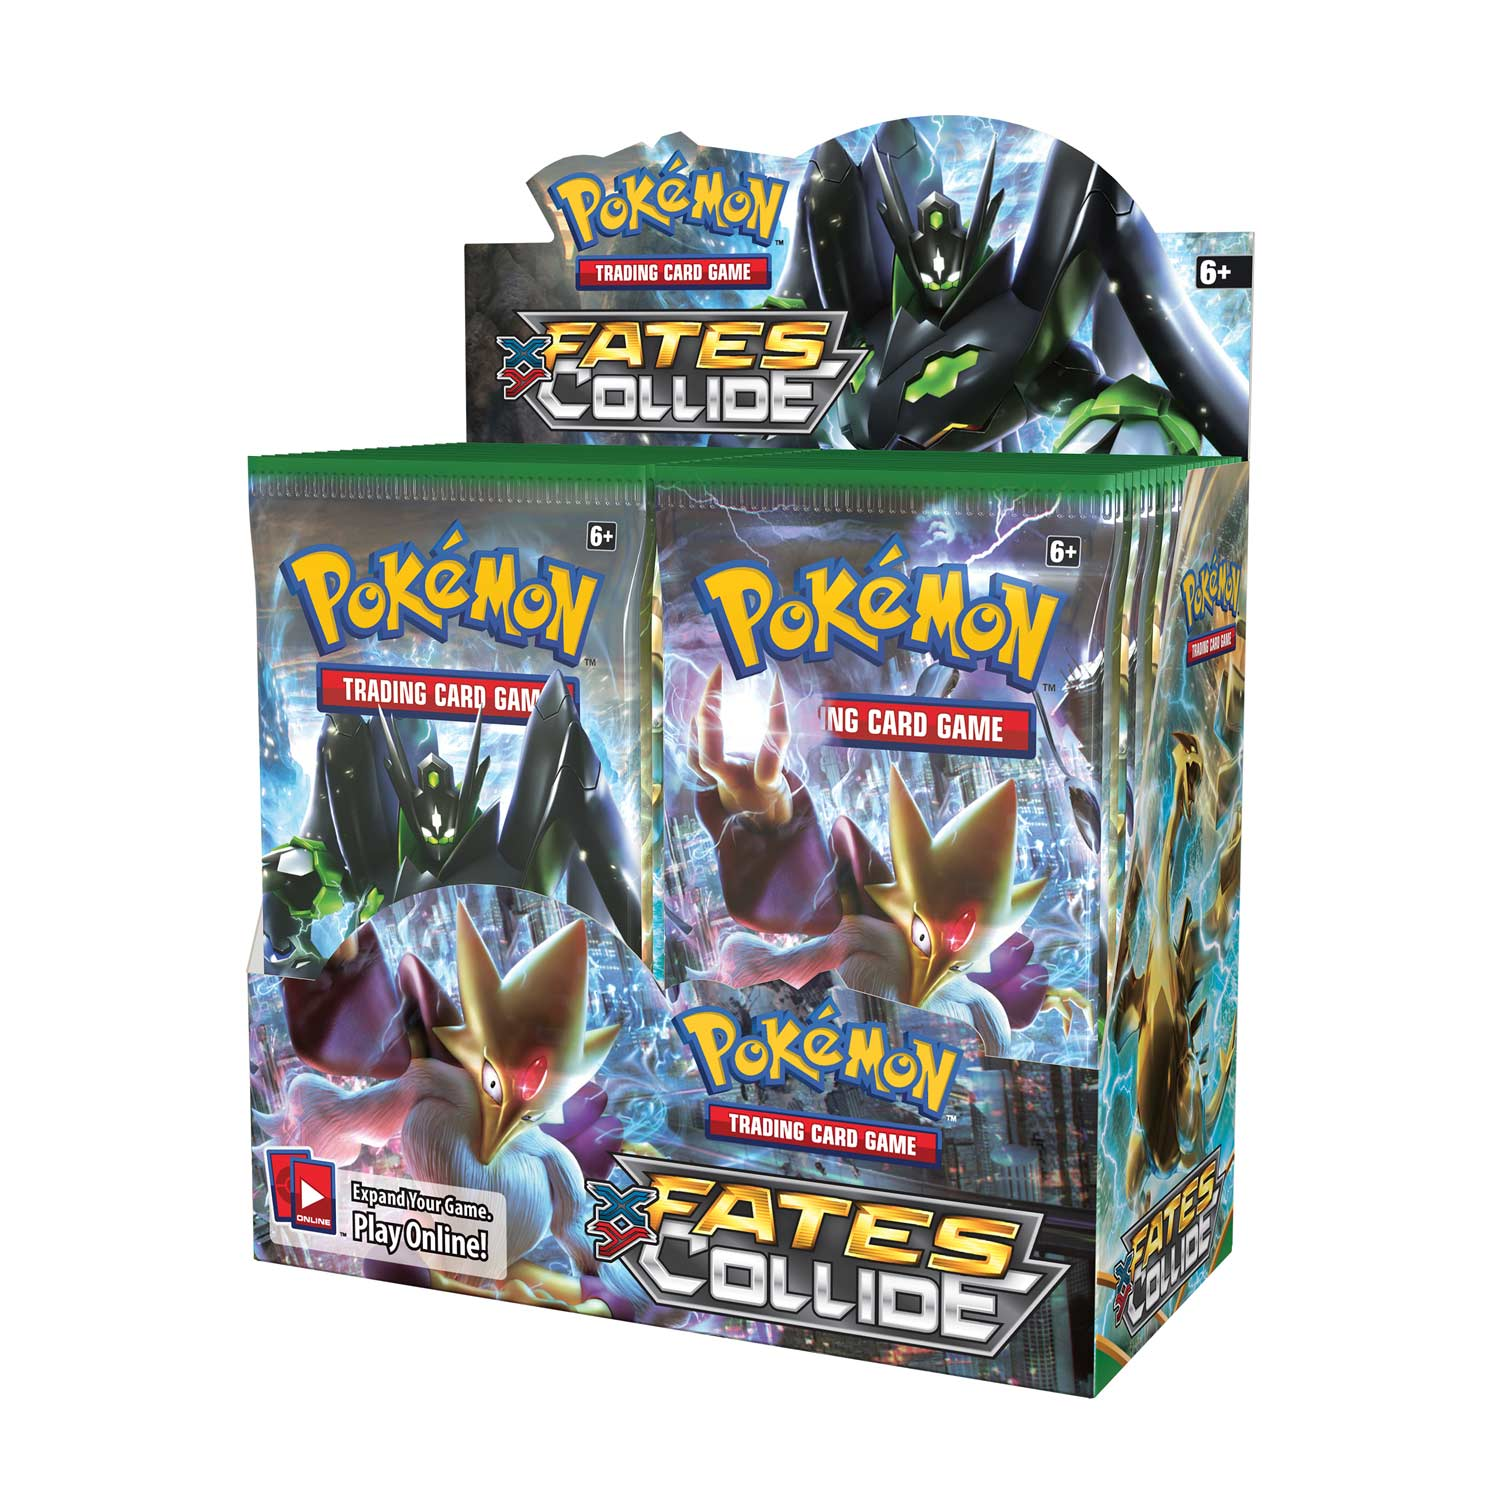 FACTORY SEALED POKEMON FATES COLLIDE SLEEVED BOOSTER PACK x 5